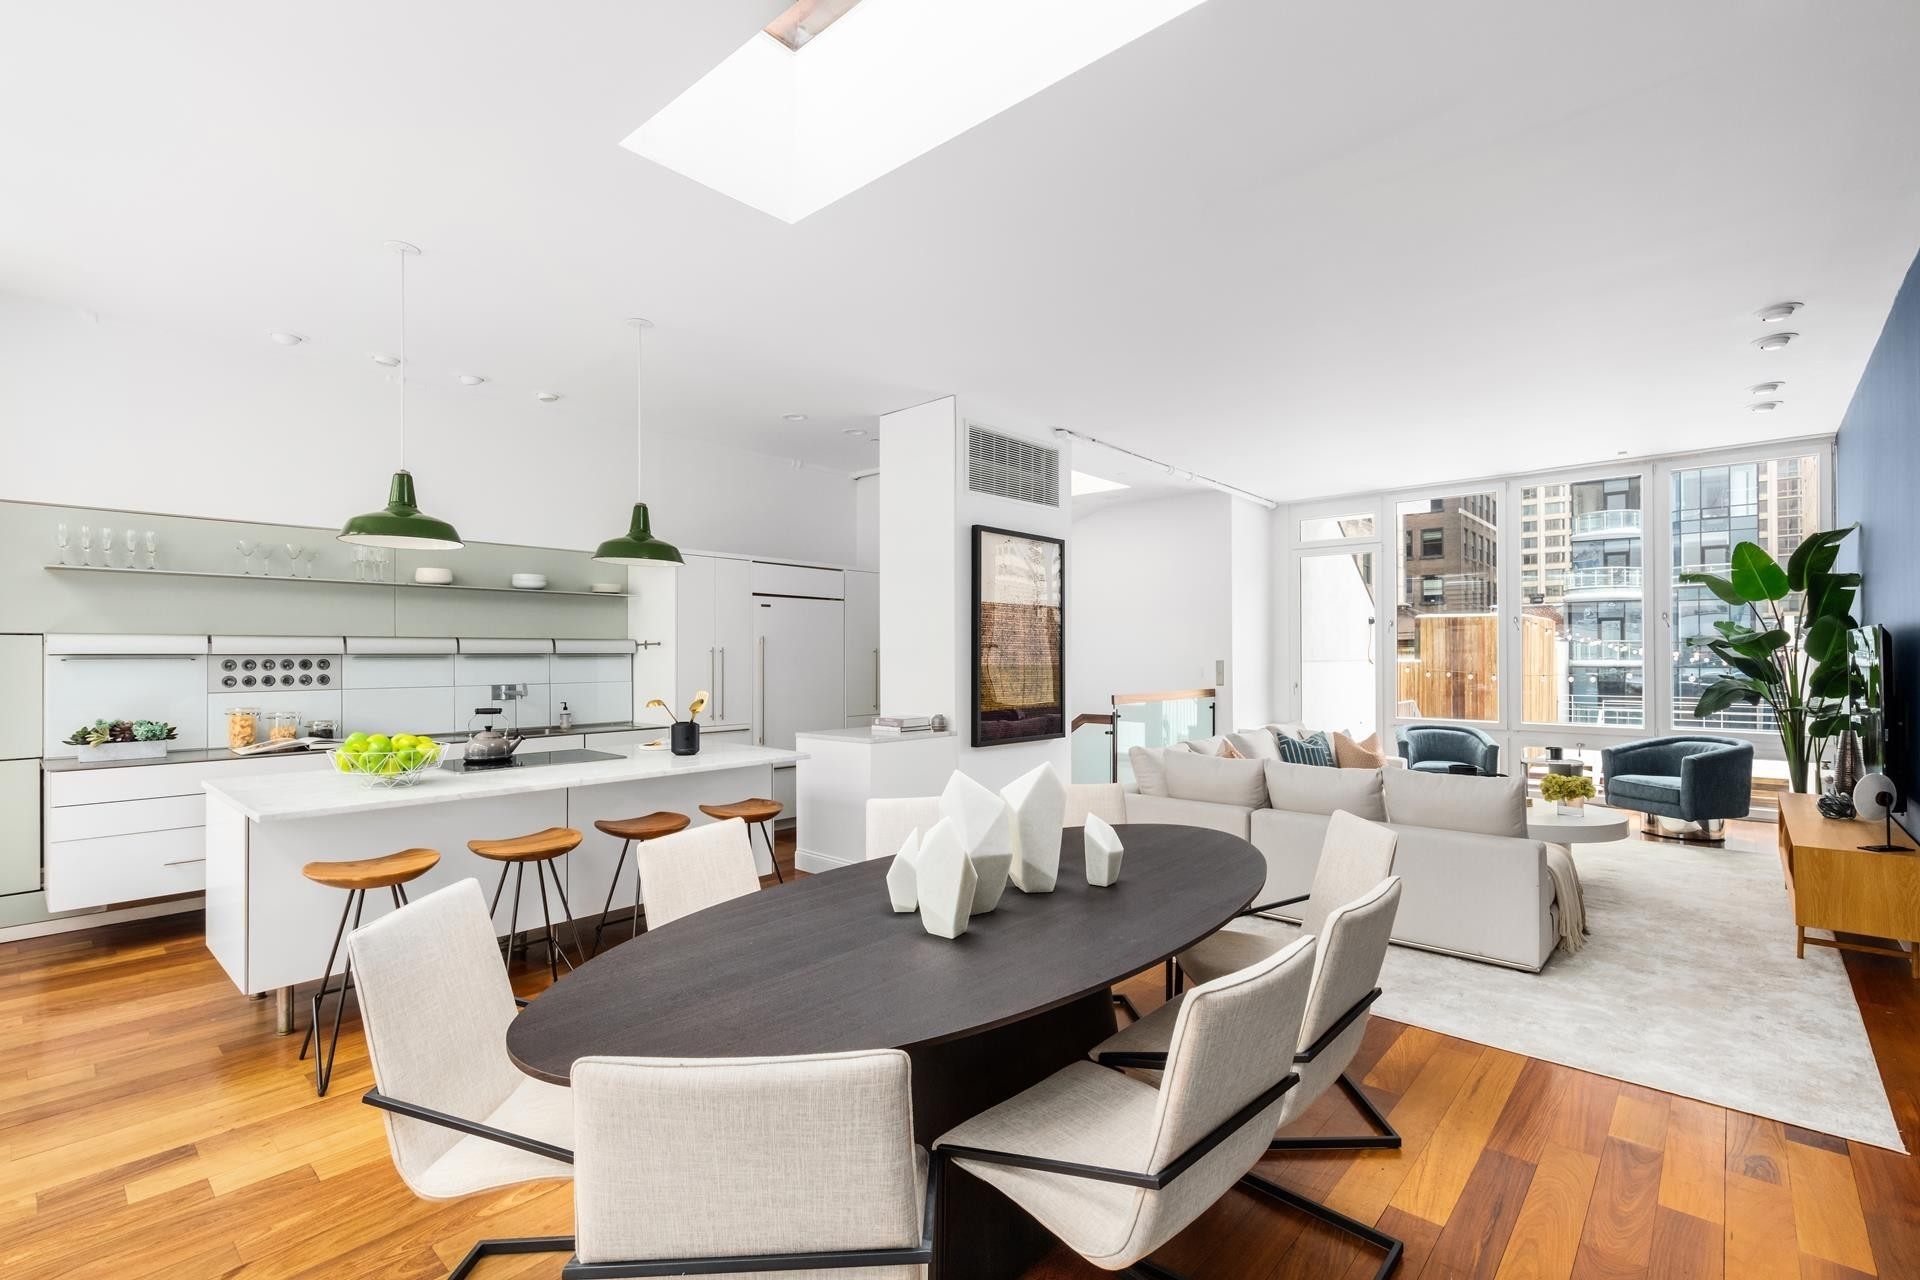 Property en 19 MURRAY ST , PH Upper East Side, New York, NY 10007